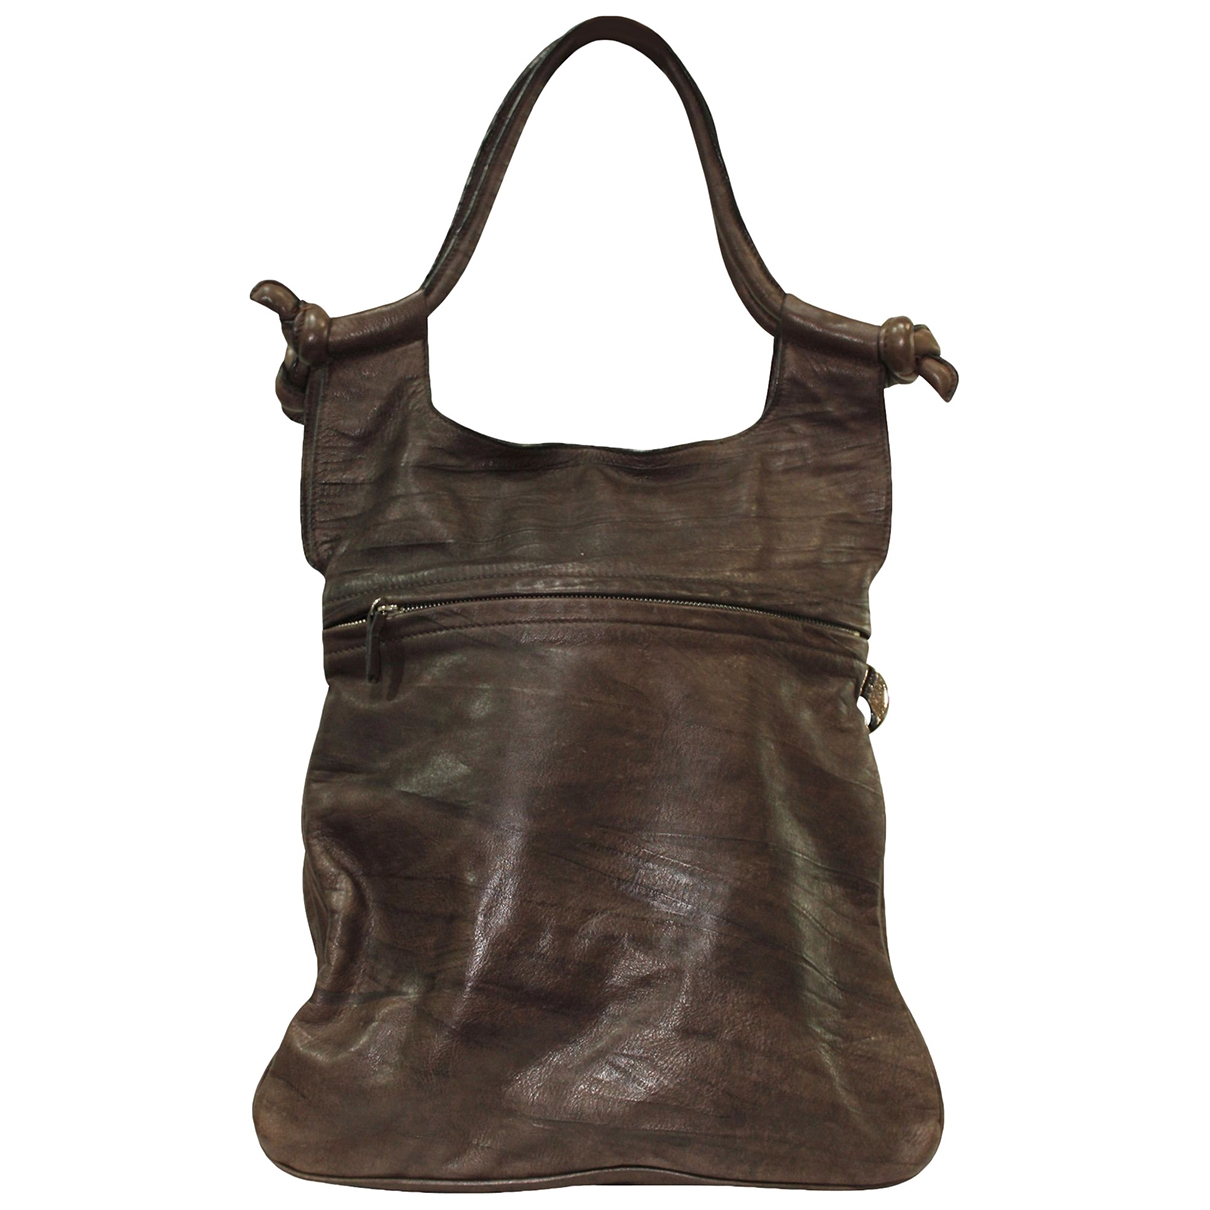 Mulberry \N Brown Leather handbag for Women \N